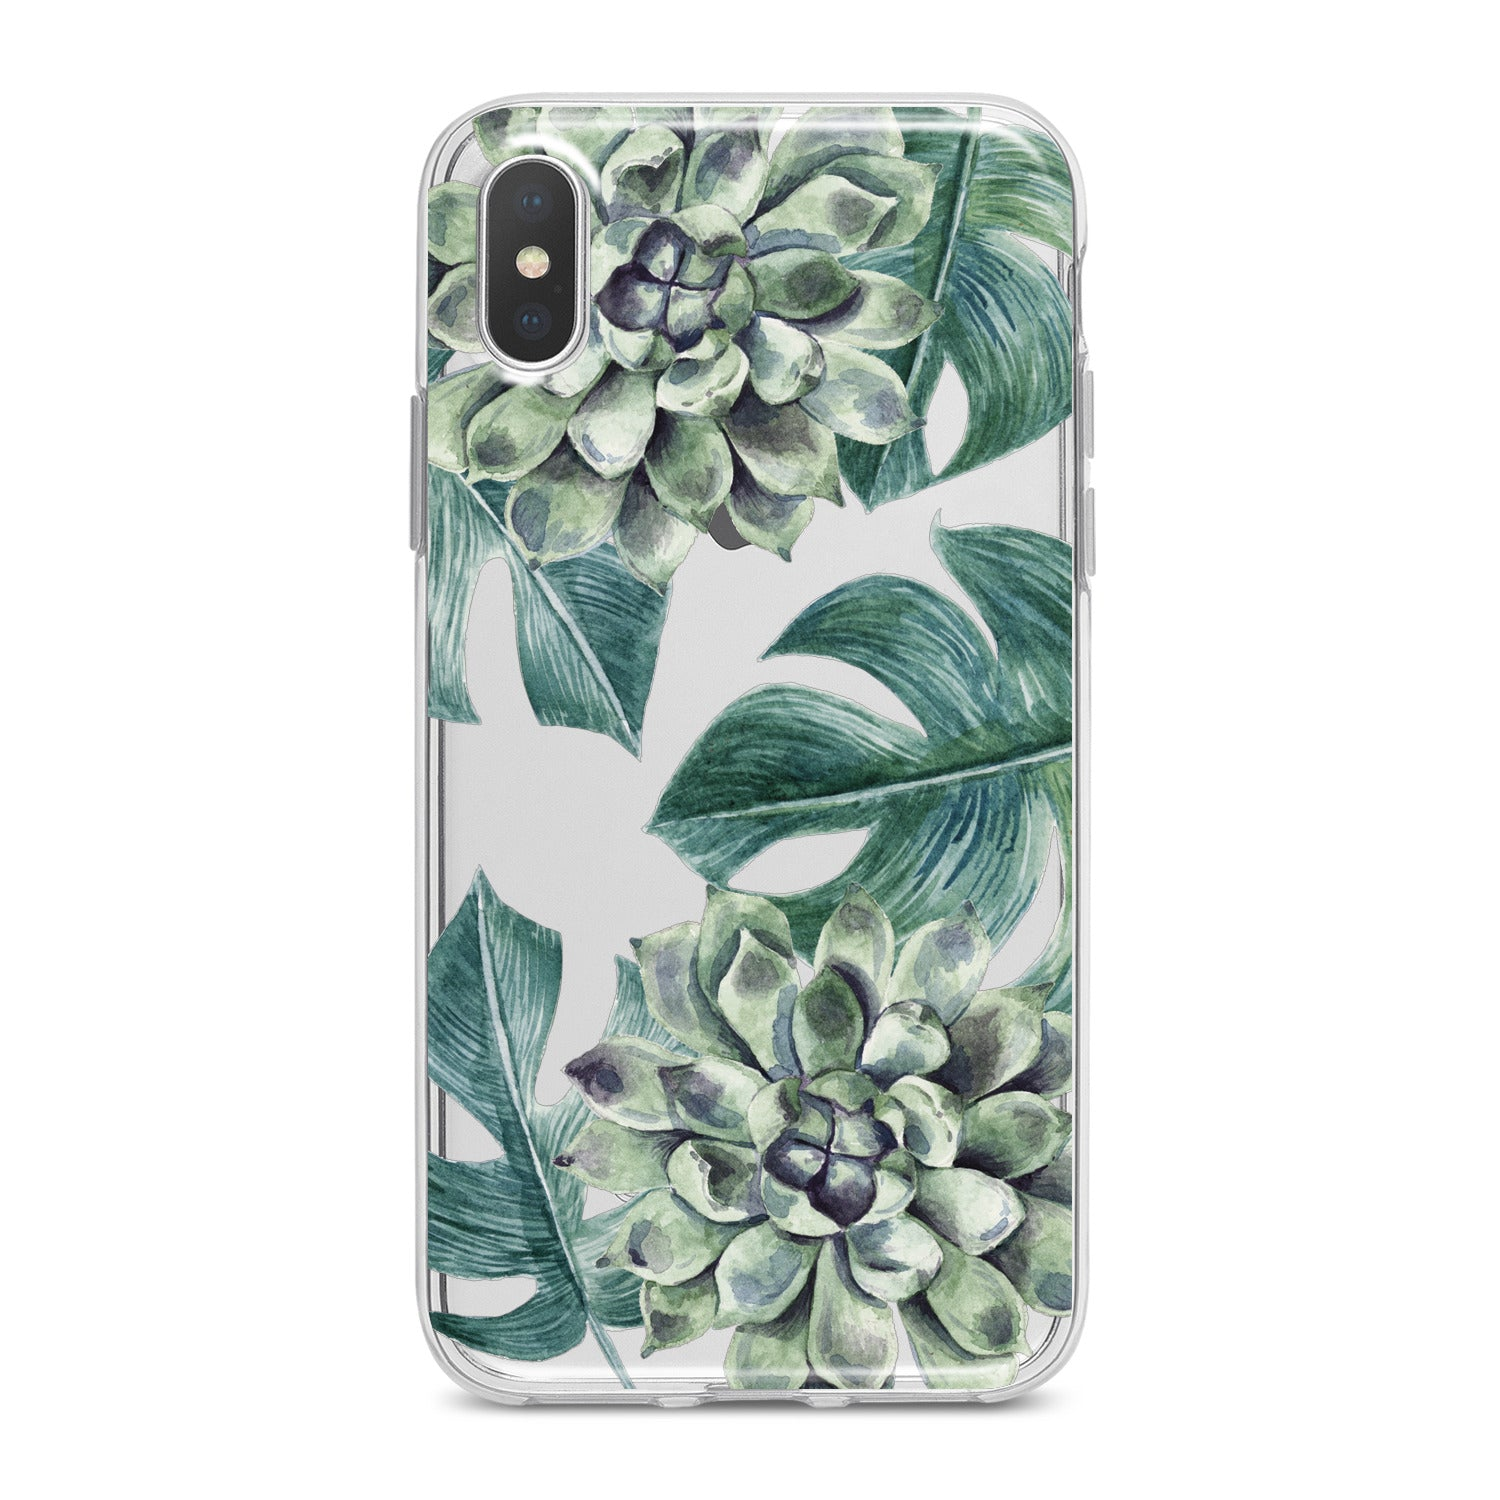 Lex Altern Green Leaves Bloom Phone Case for your iPhone & Android phone.